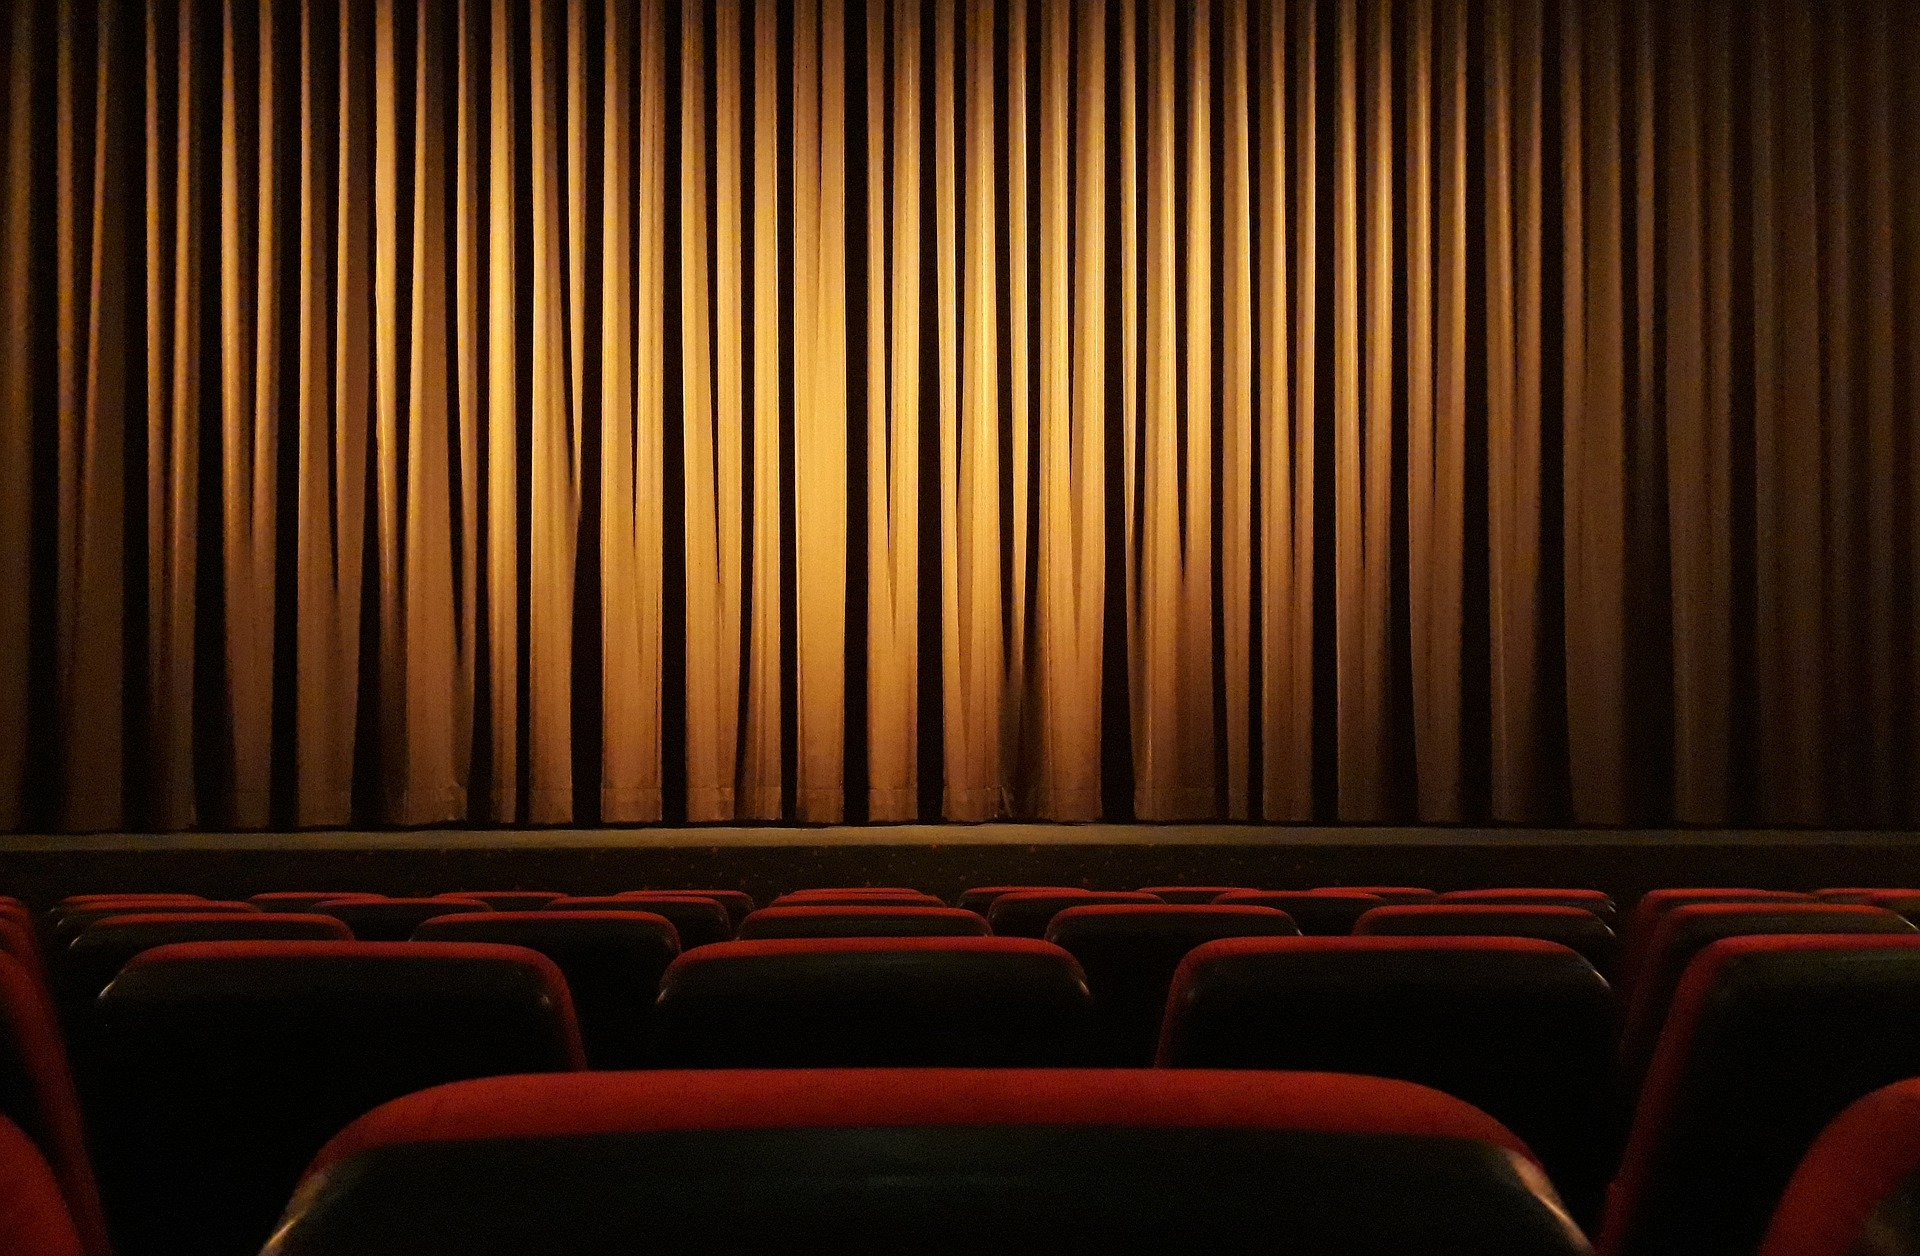 EU Funding Available for Cinemas as Innovation Hubs for Local Communities